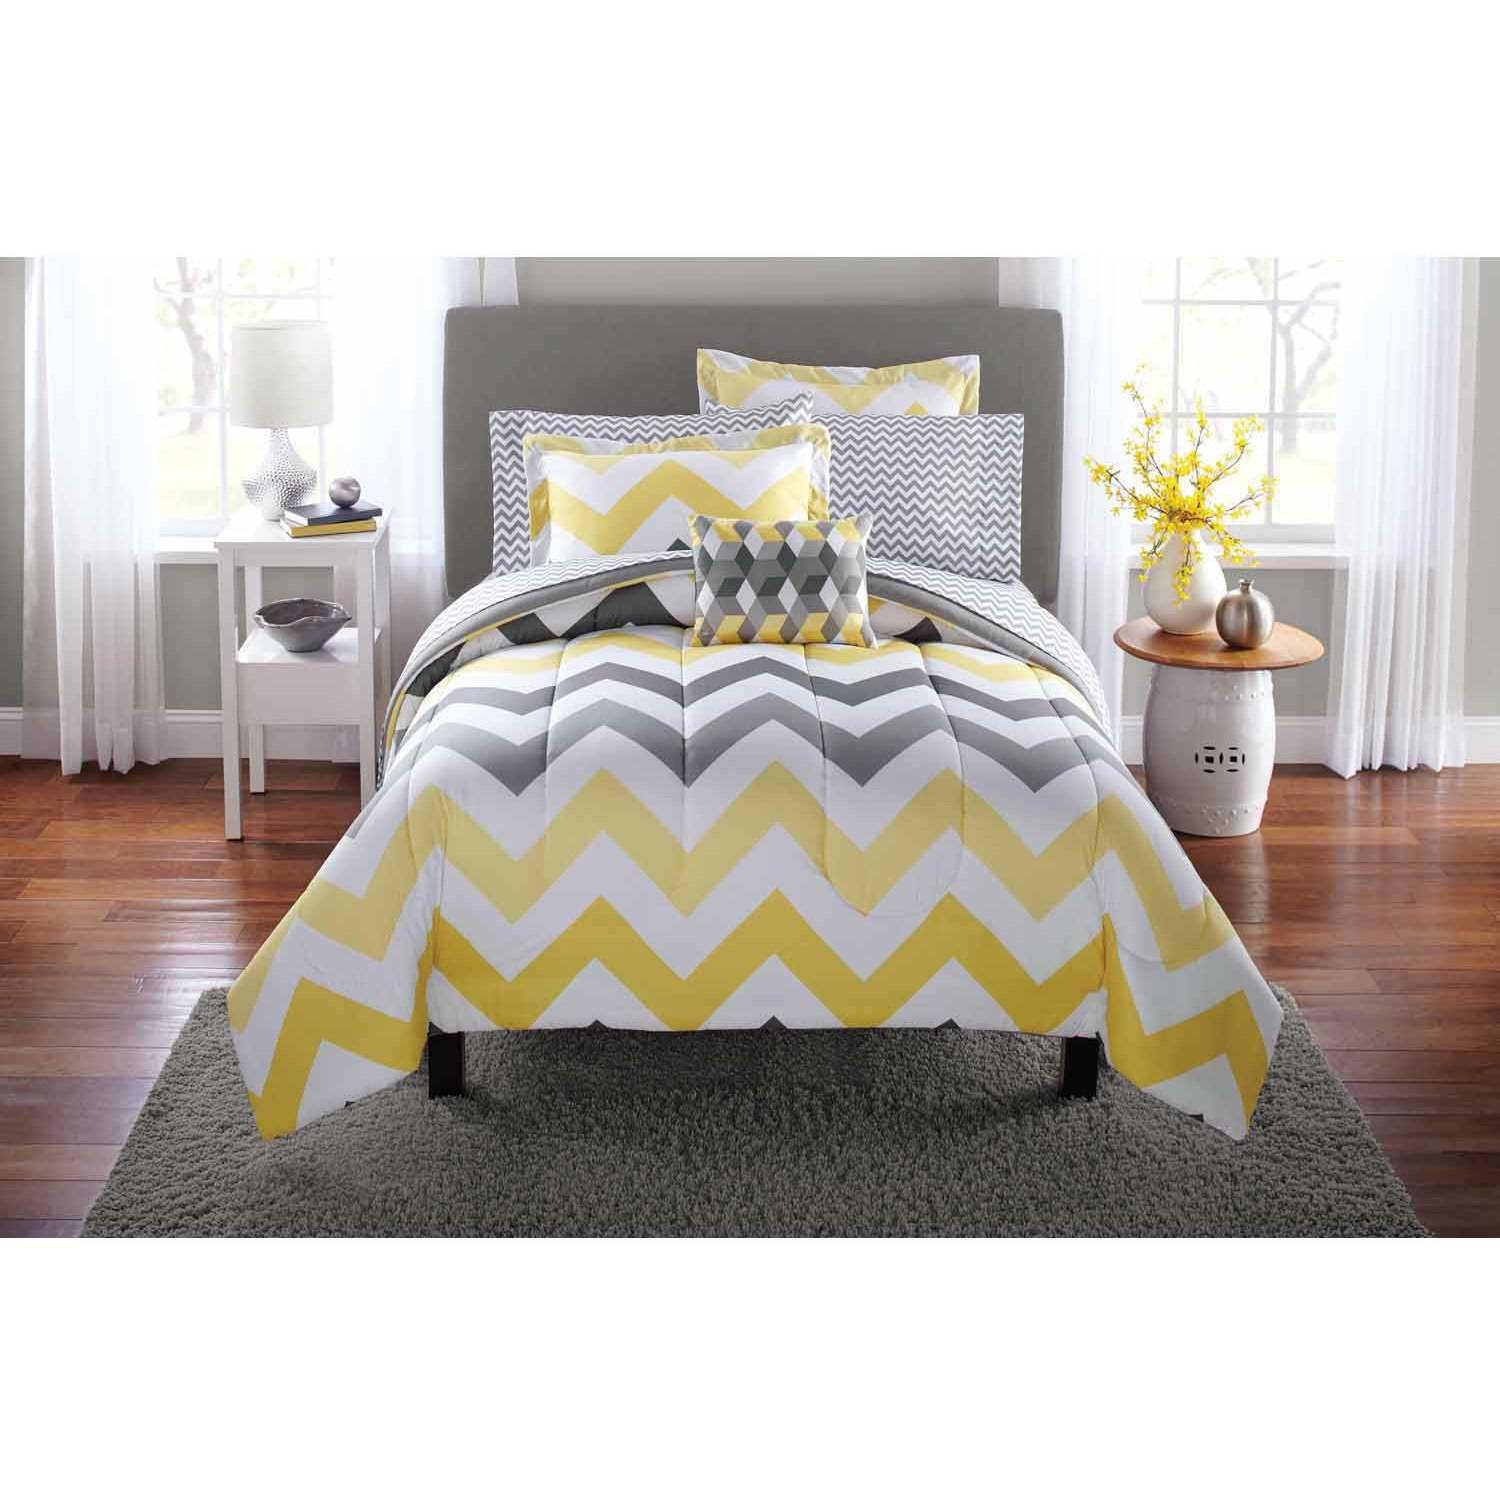 Bedding sets for teenage girls walmart - Bedding Sets For Teenage Girls Walmart 9